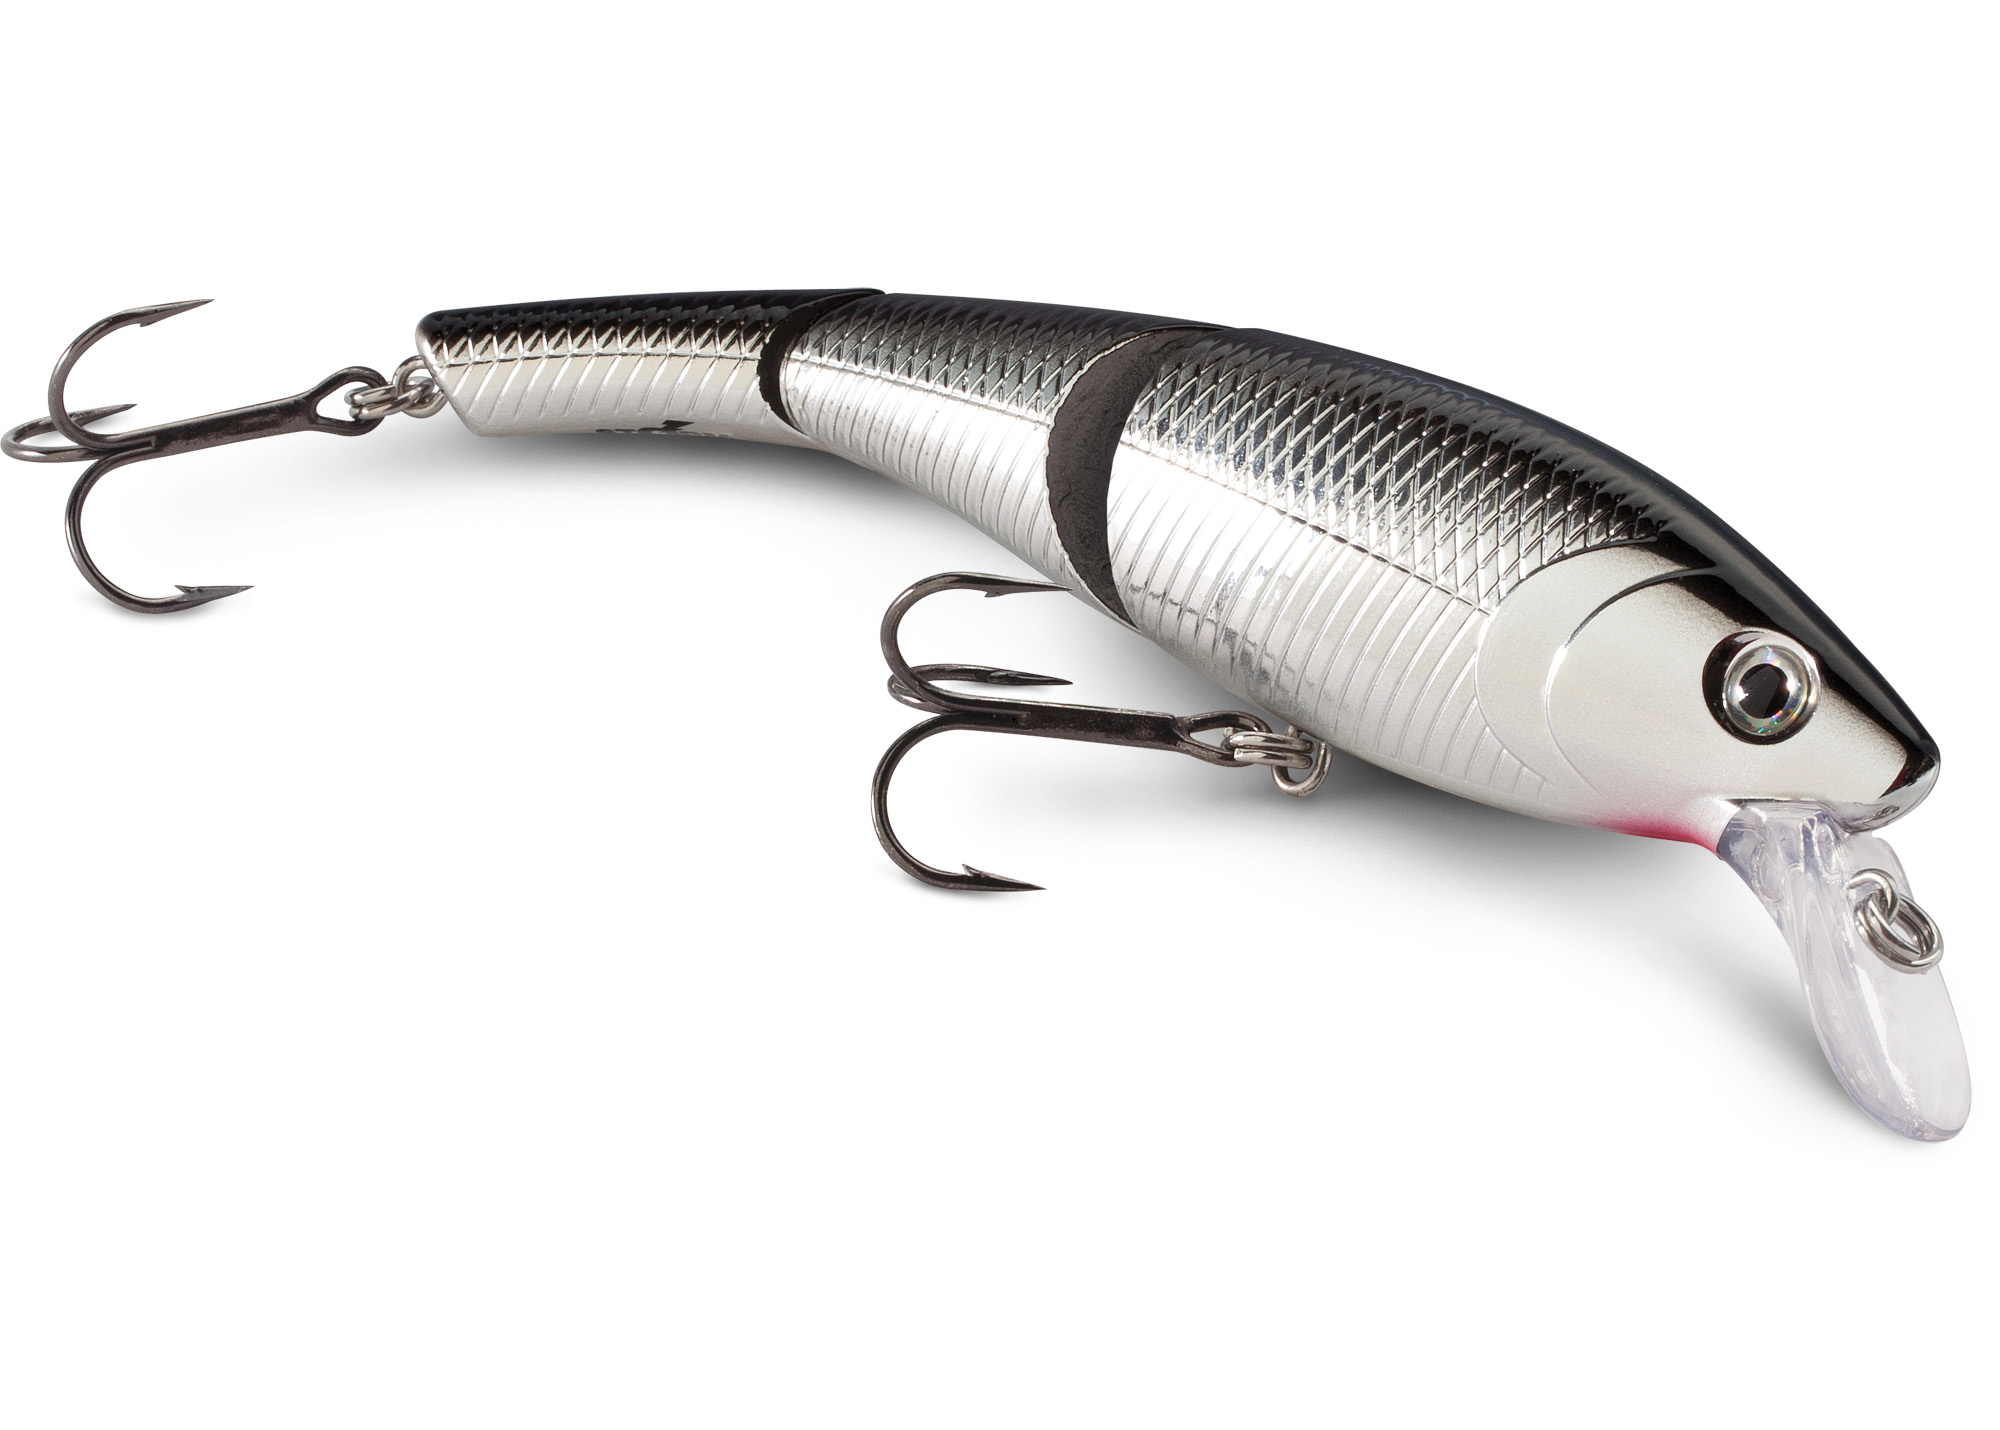 Swimmin 39 stick for Rapala fishing pro series ps4